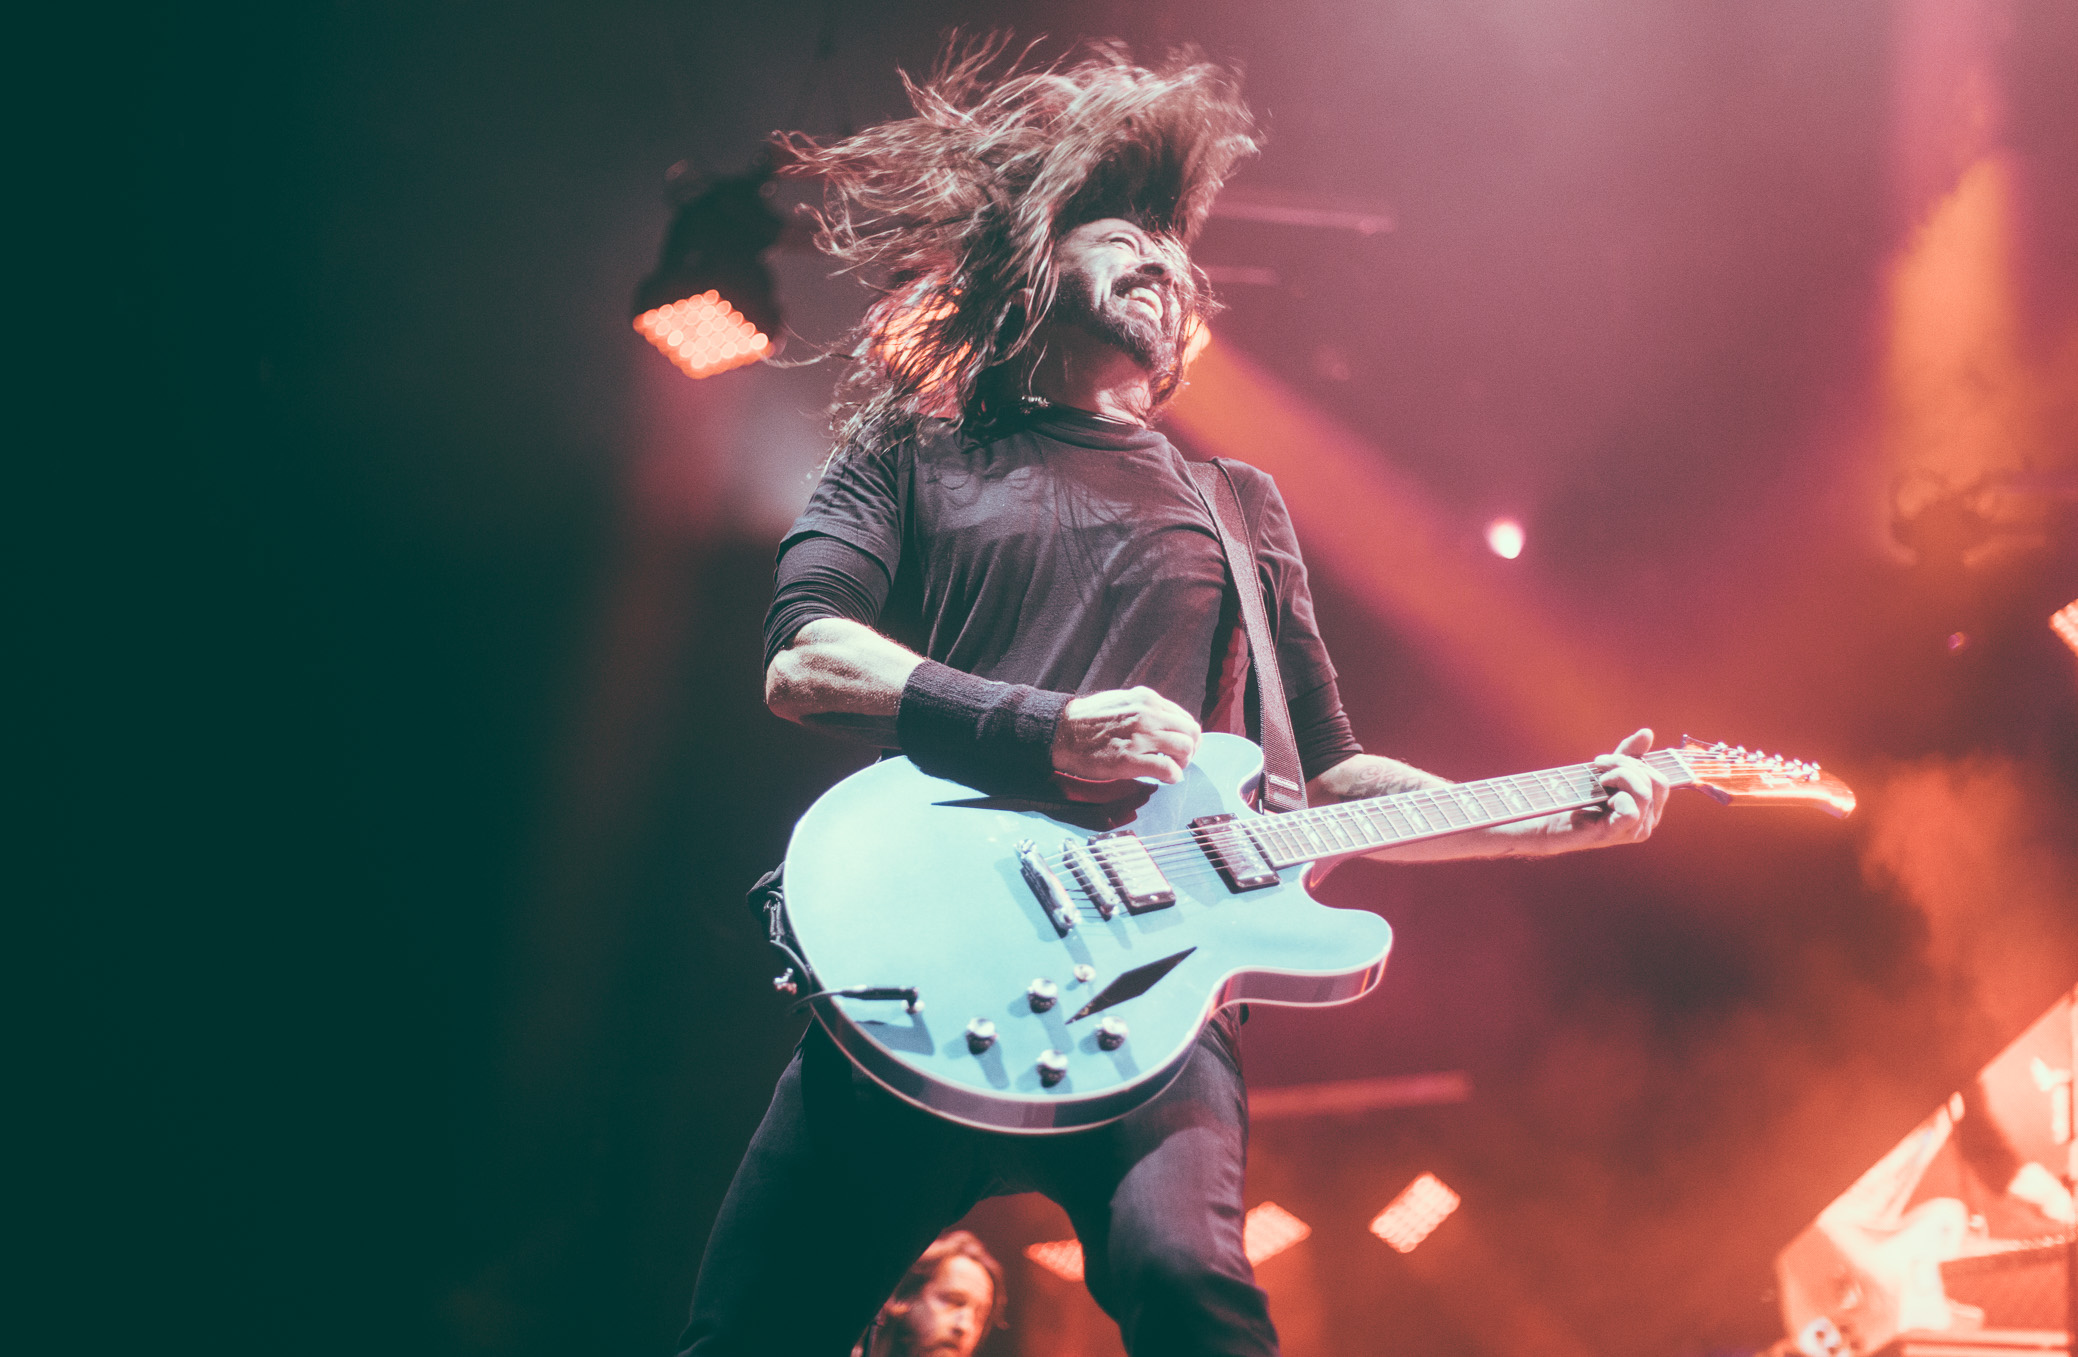 Foo Fighters Dave Grohl Concert Photography